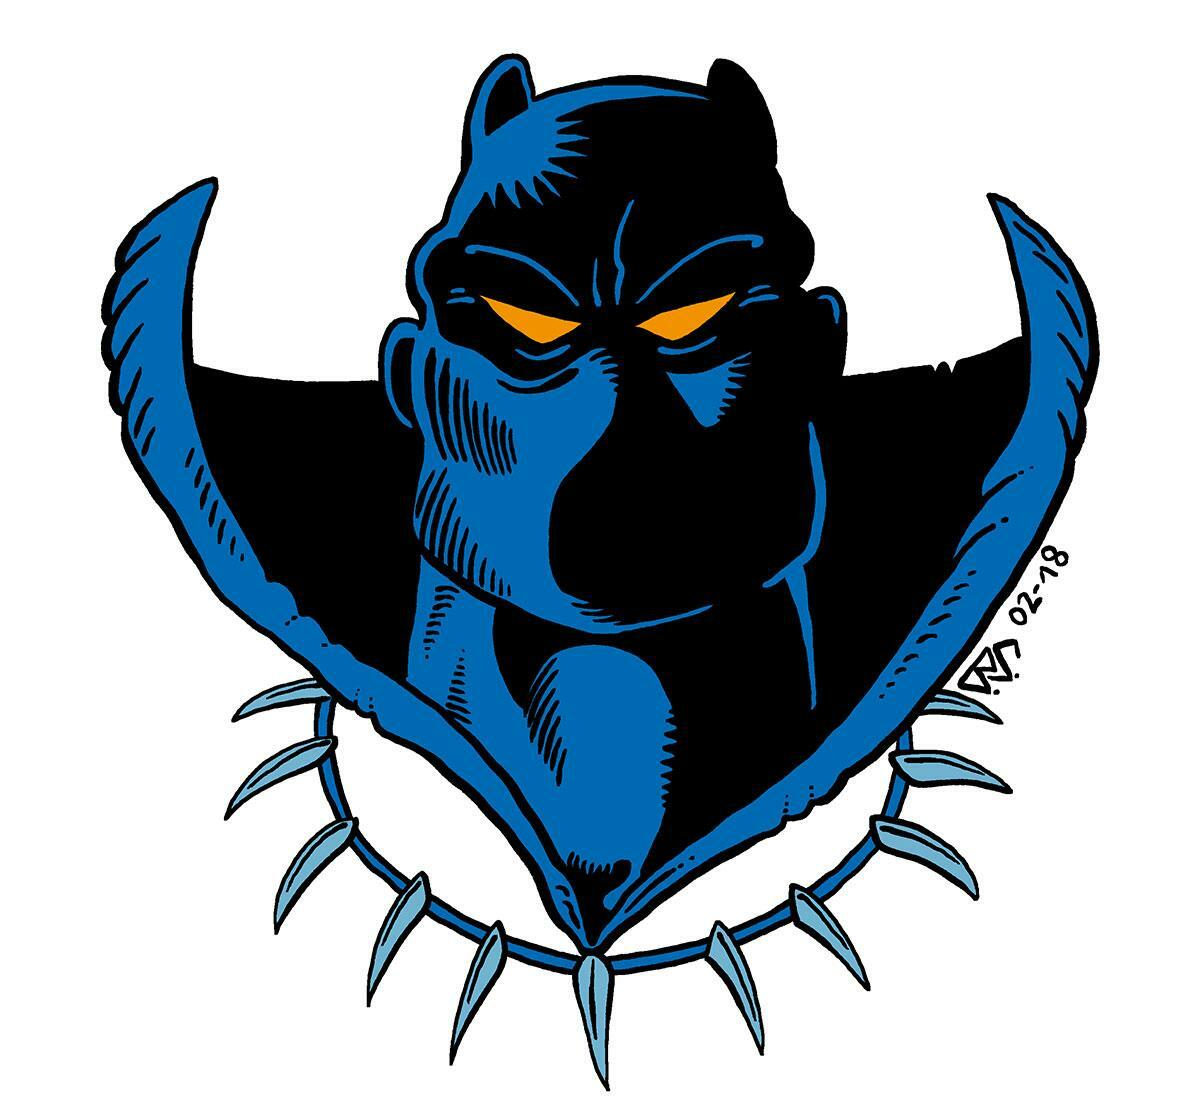 panther power Black panther knowledge: t'challa has the power to draw all the knowledge, strength, and every experience from every previous black panther enhanced strength, speed, durability, and senses genius intelligence.